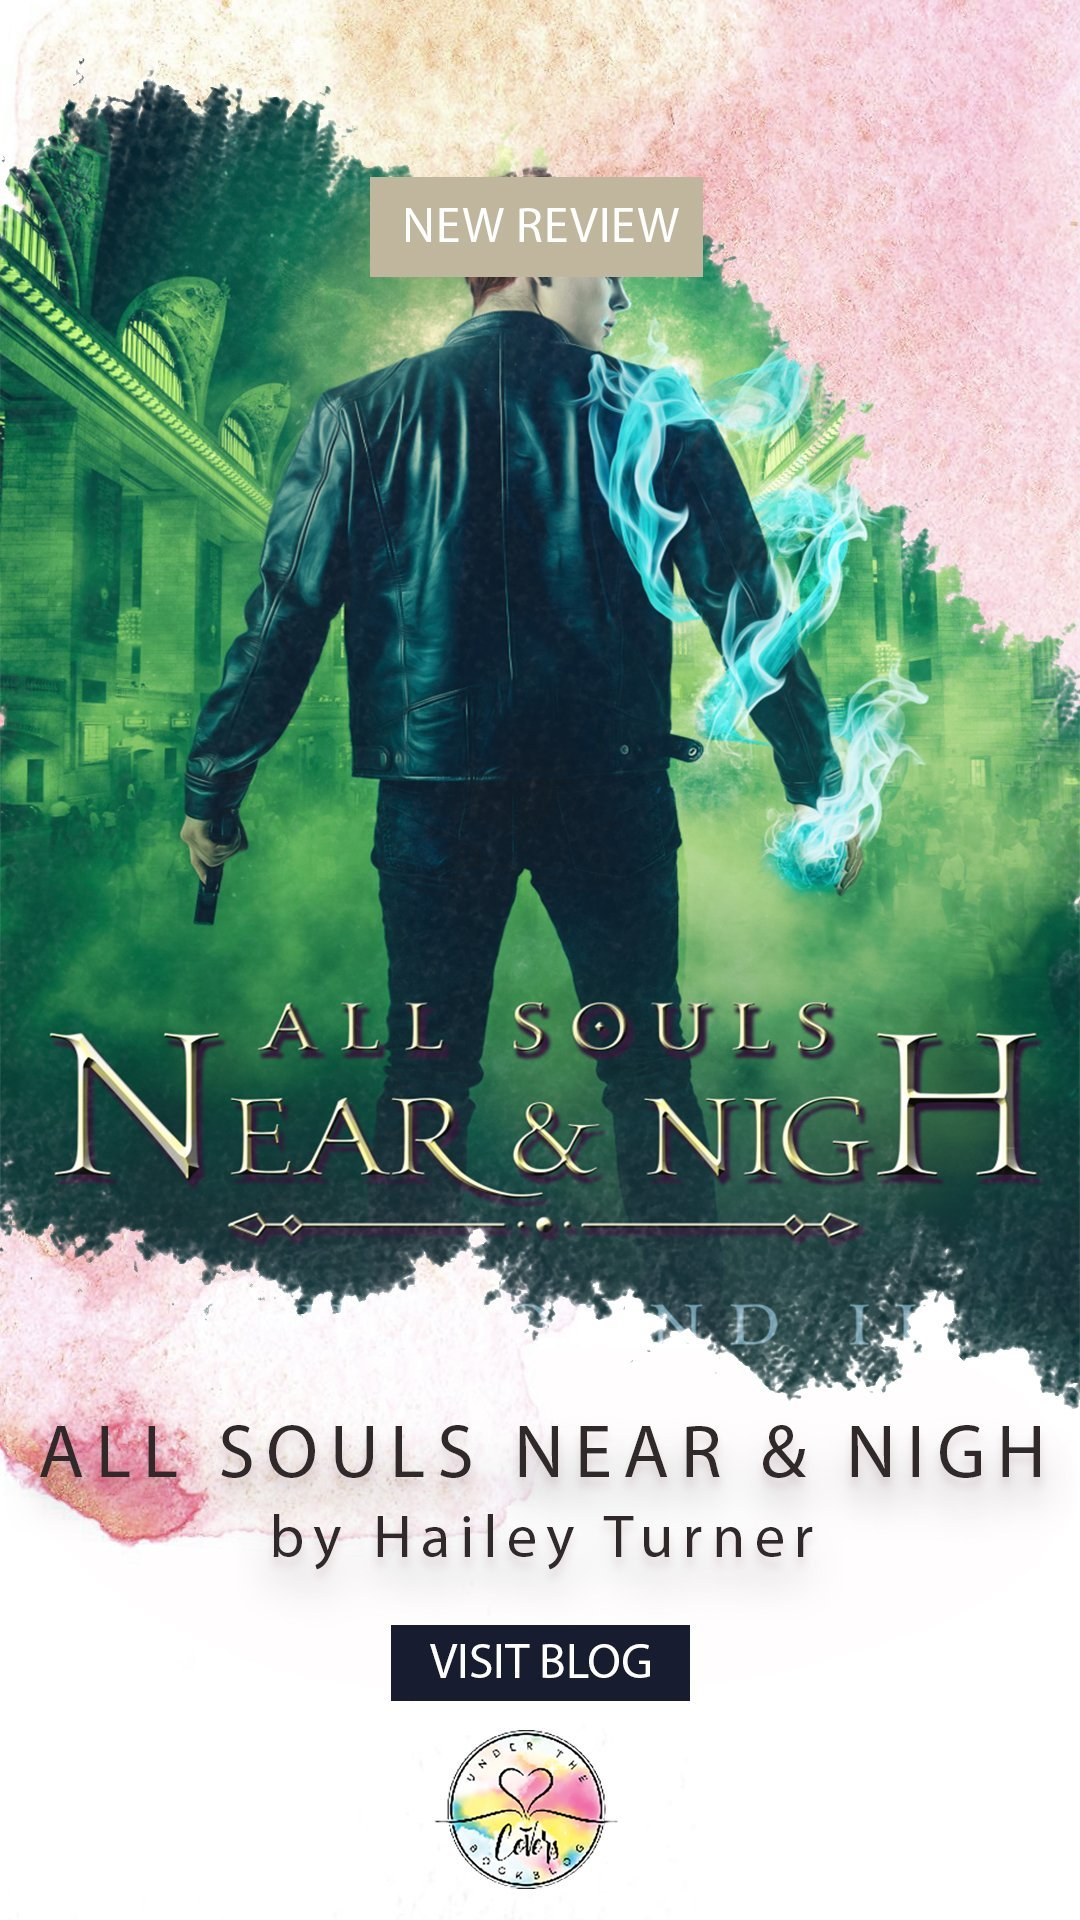 ARC Review: All Souls Near & Nigh by Hailey Turner